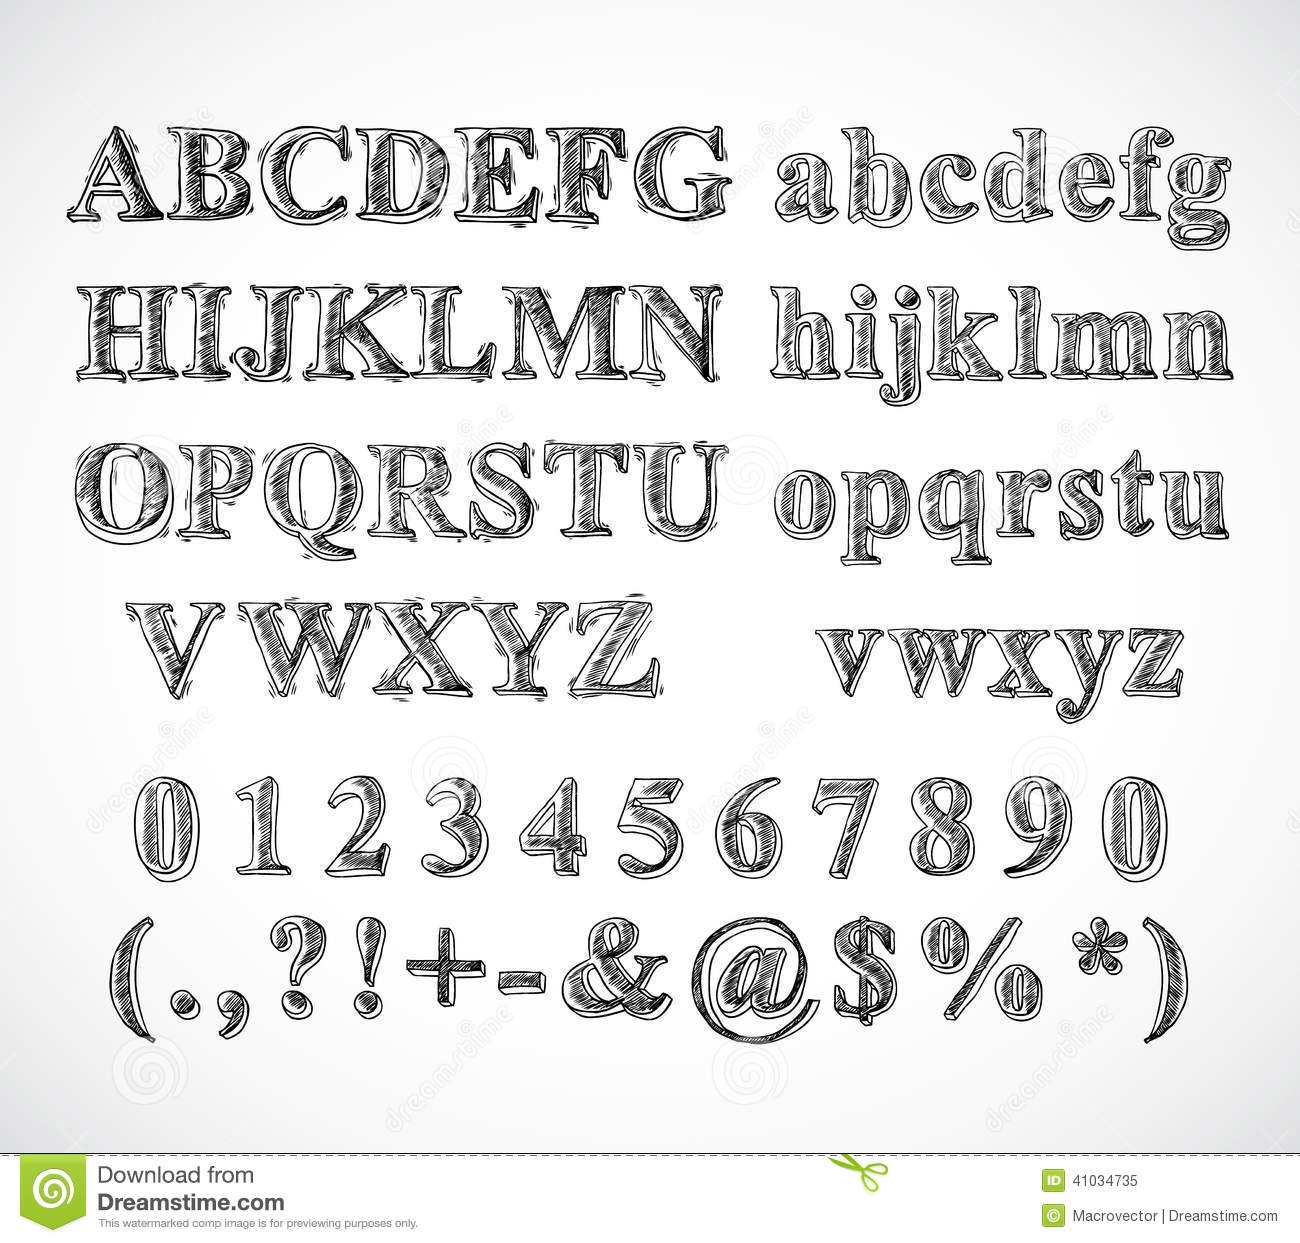 Sketch hand drawn alphabet black and white font letters numbers and